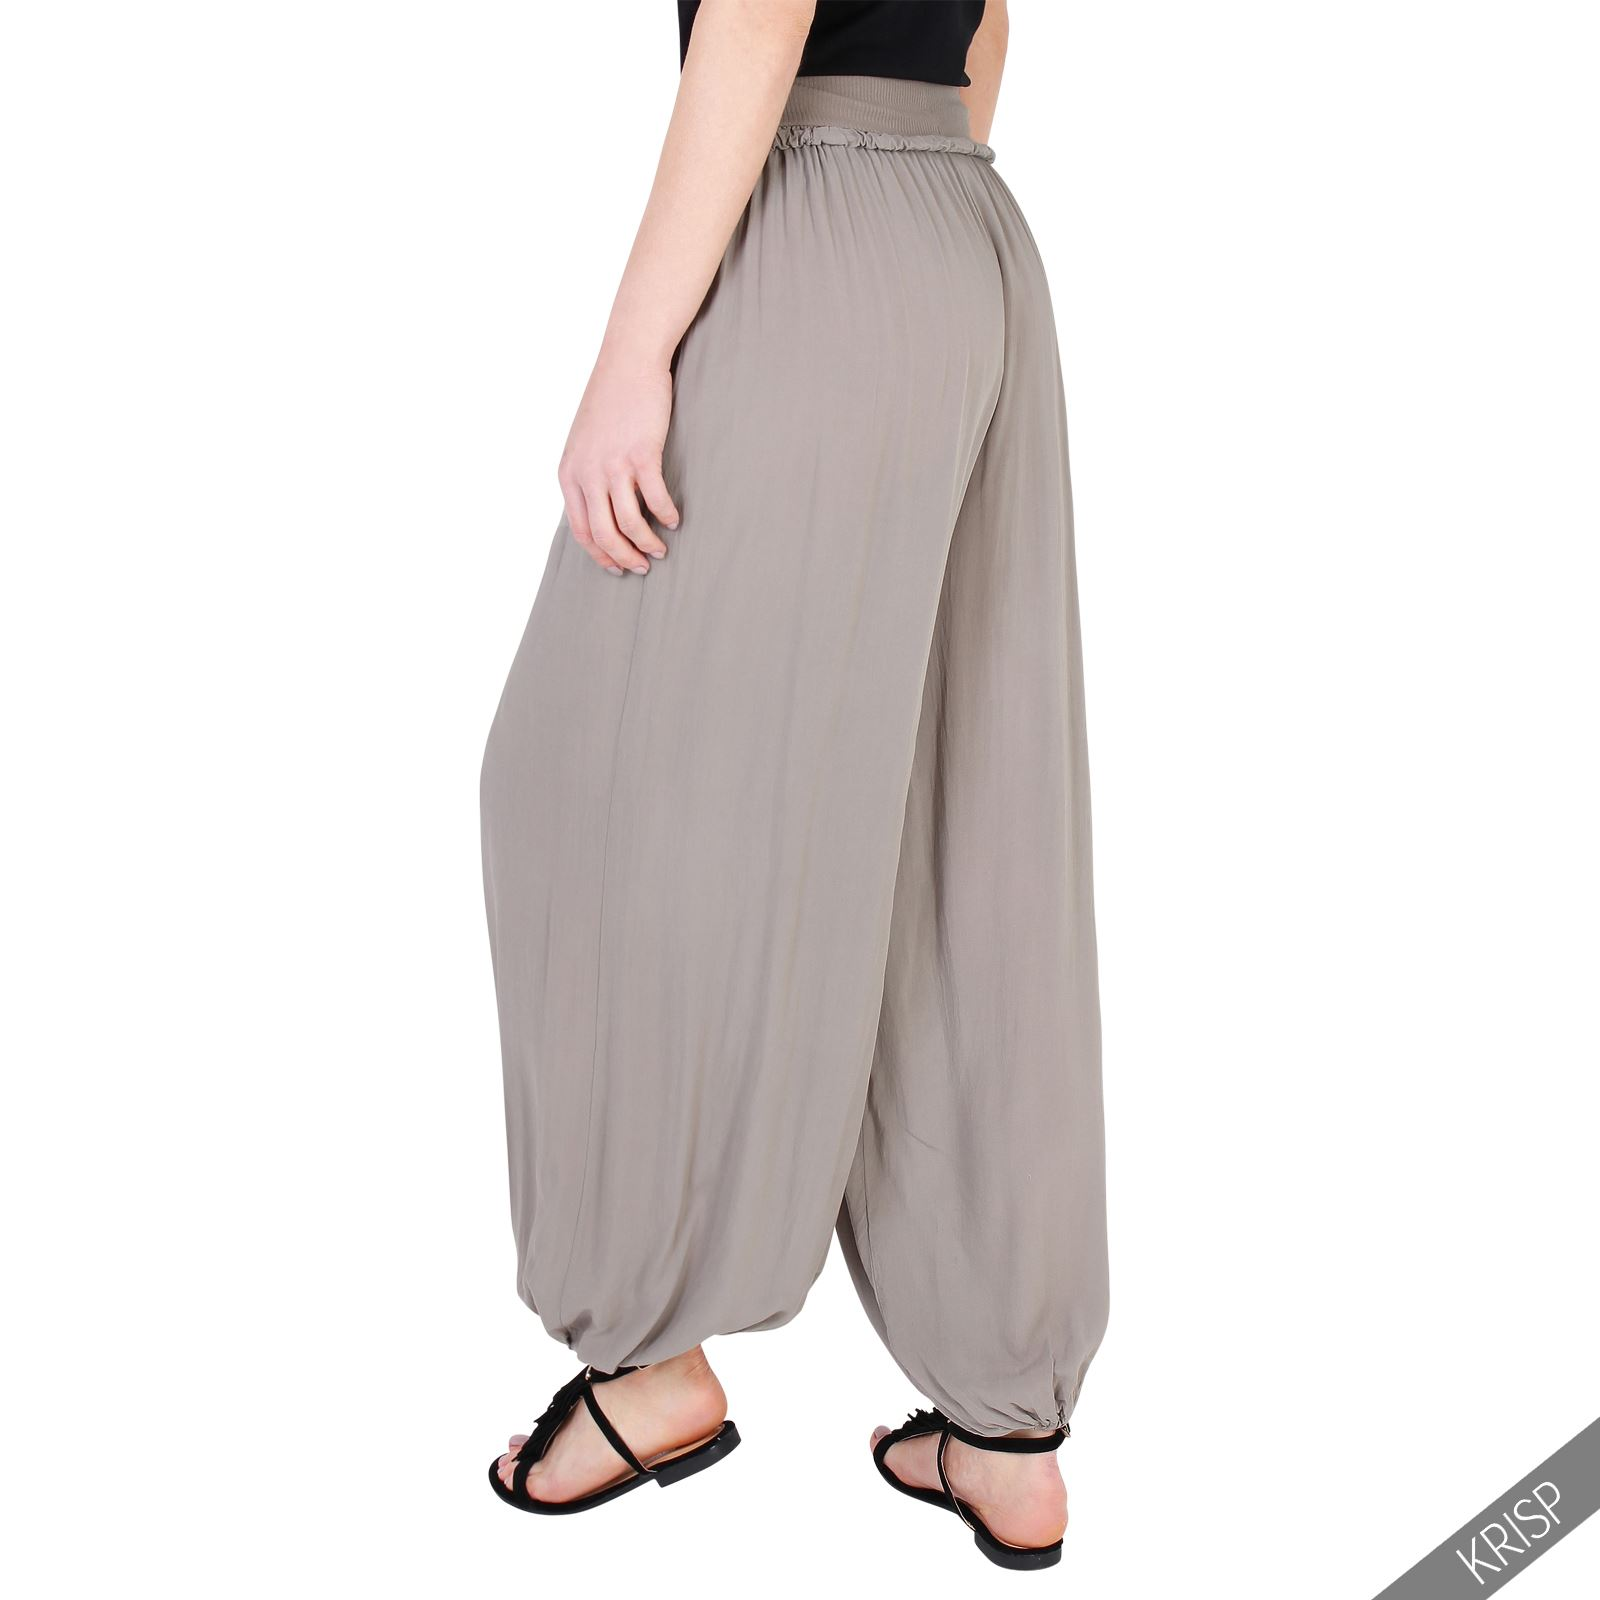 You searched for: hammer pants women! Etsy is the home to thousands of handmade, vintage, and one-of-a-kind products and gifts related to your search. No matter what you're looking for or where you are in the world, our global marketplace of sellers can help you find unique and affordable options.